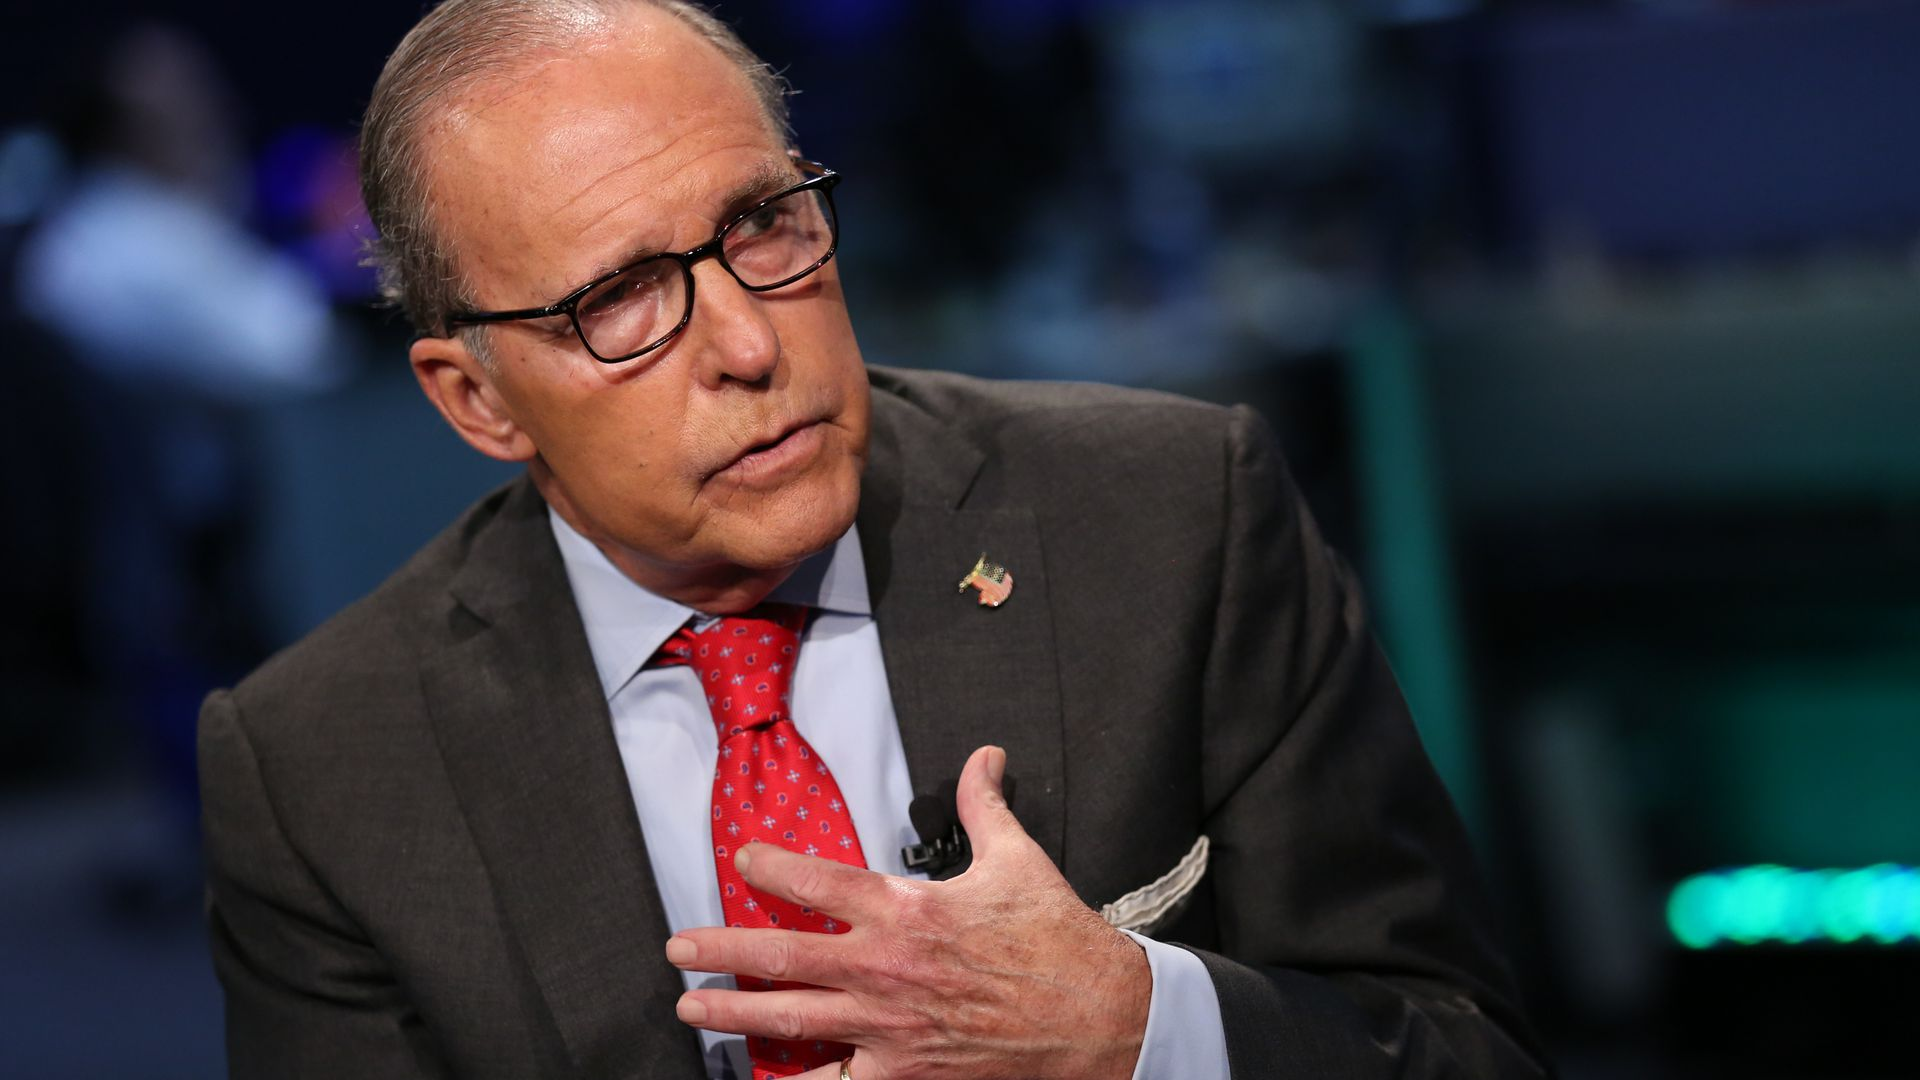 Larry Kudlow wearing a suit with red tie.